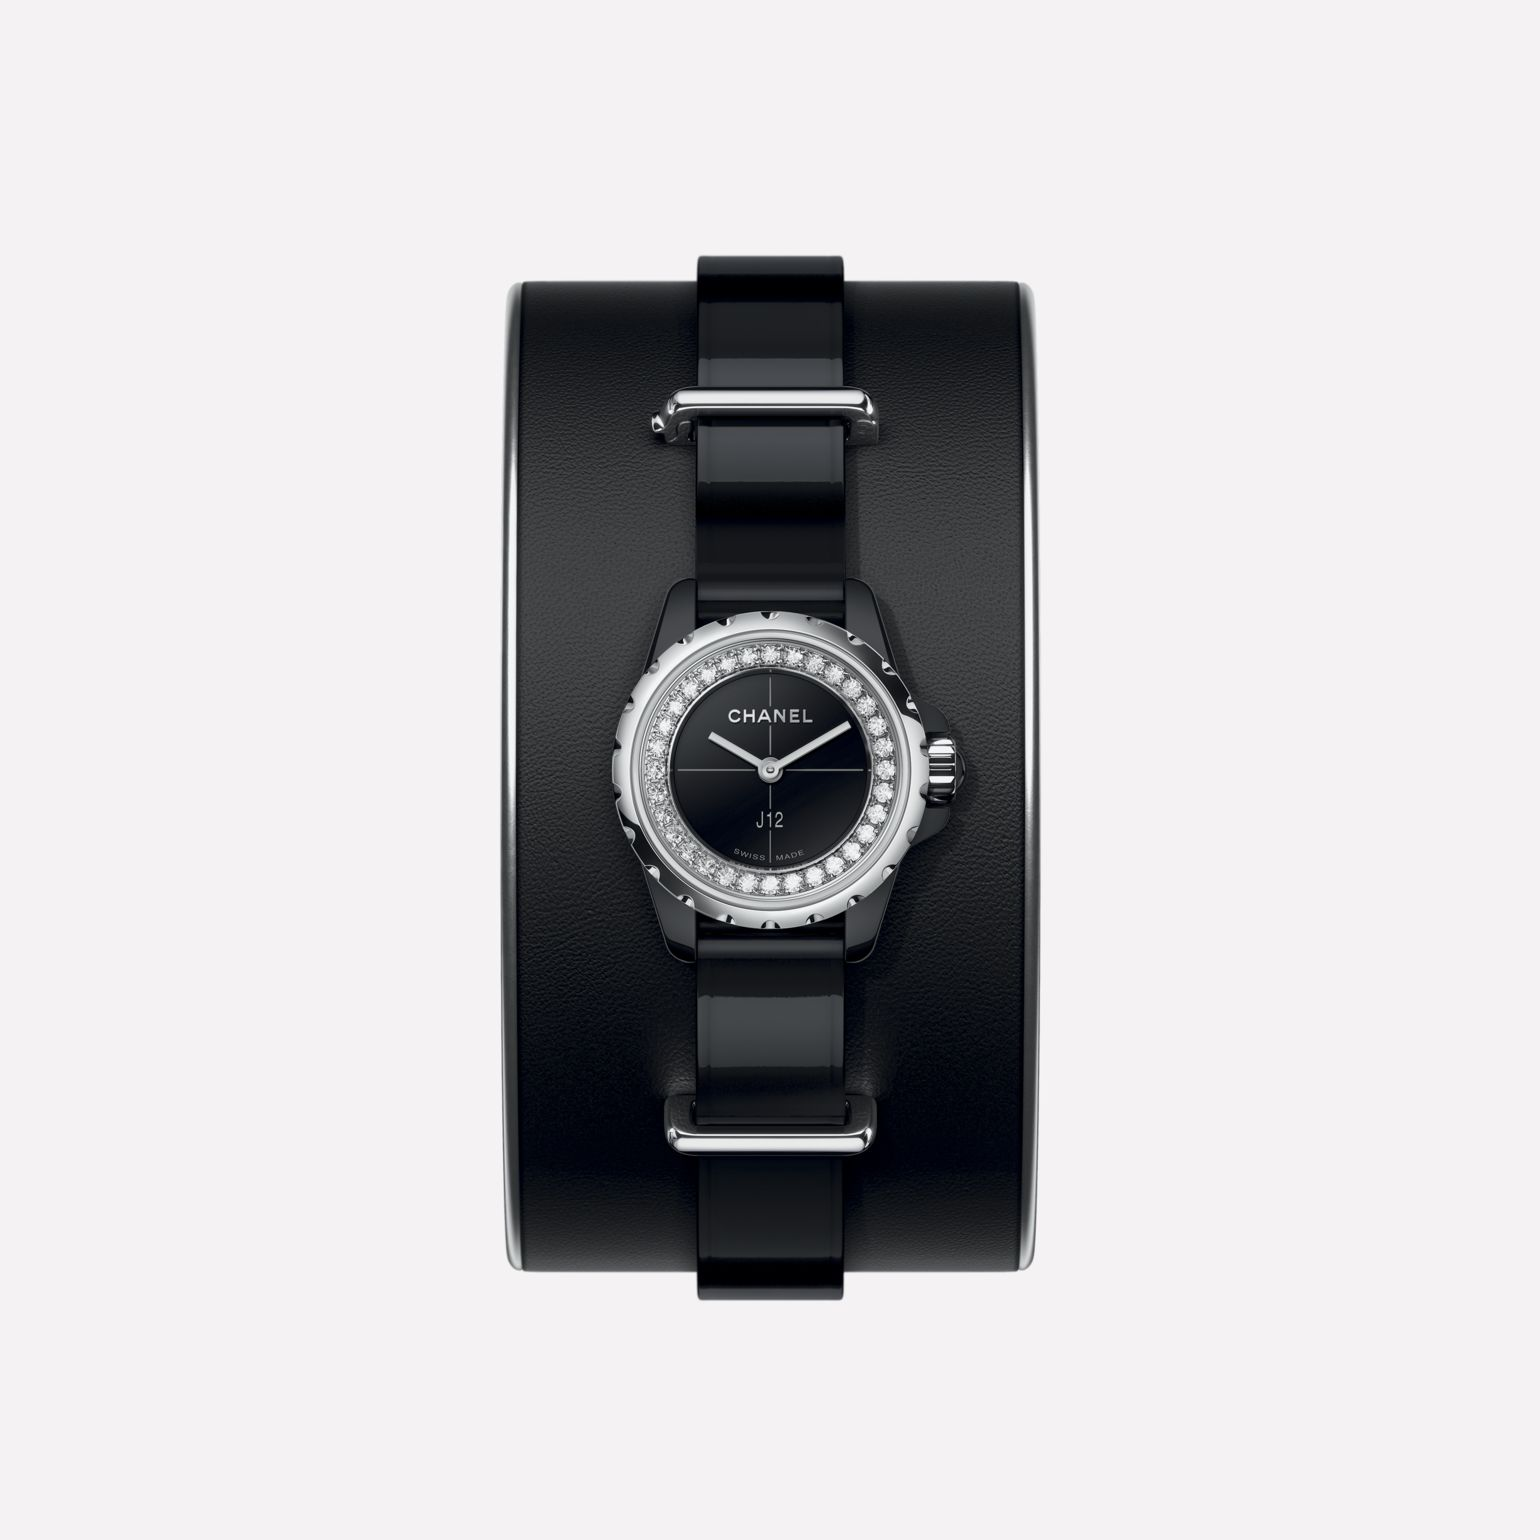 J12·XS Watch Small black leather cuff, black highly resistant ceramic and steel, brilliant-cut diamond flange